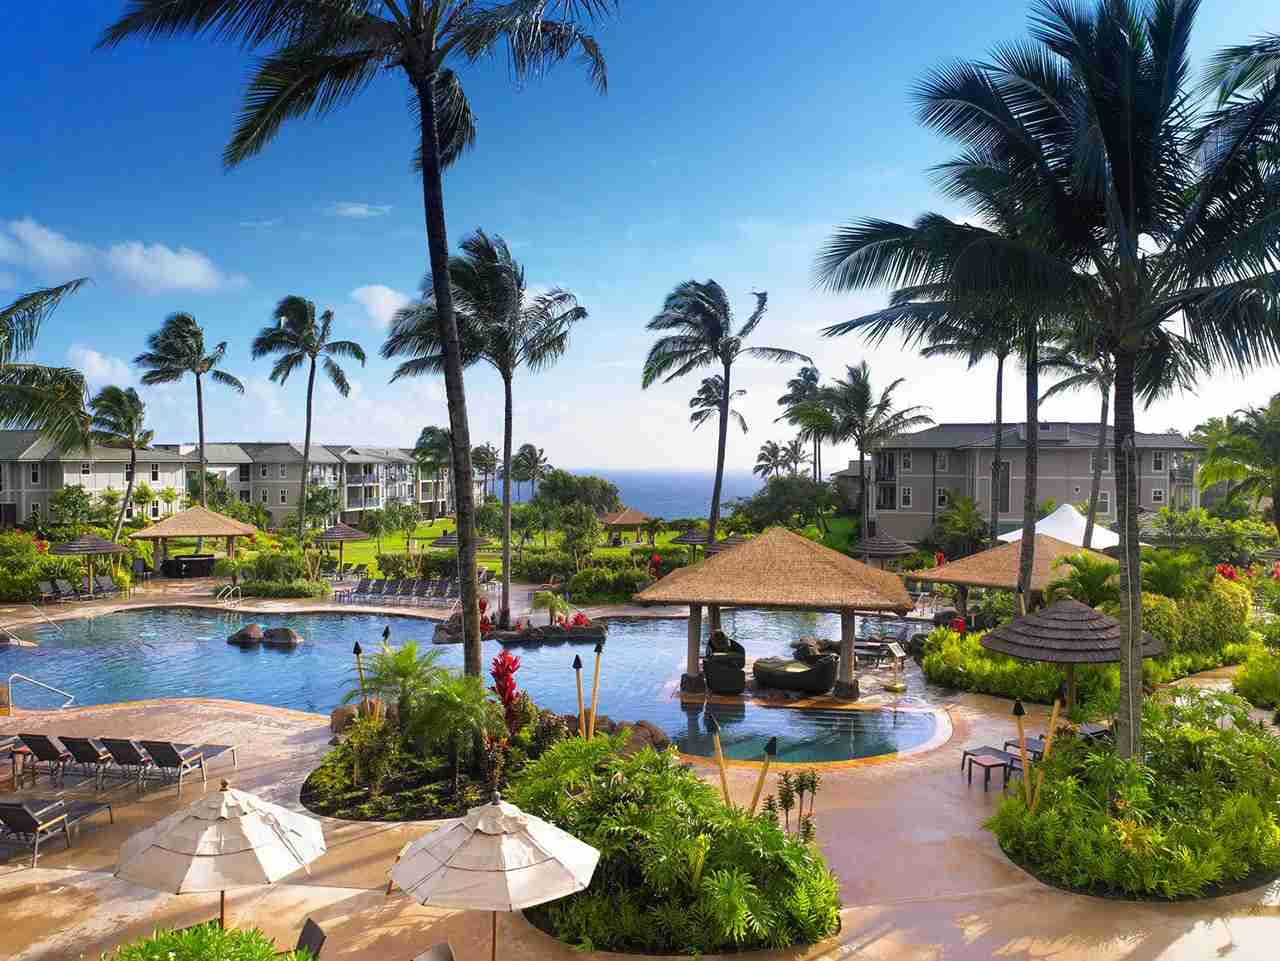 Photo courtesy of The Westin Princeville